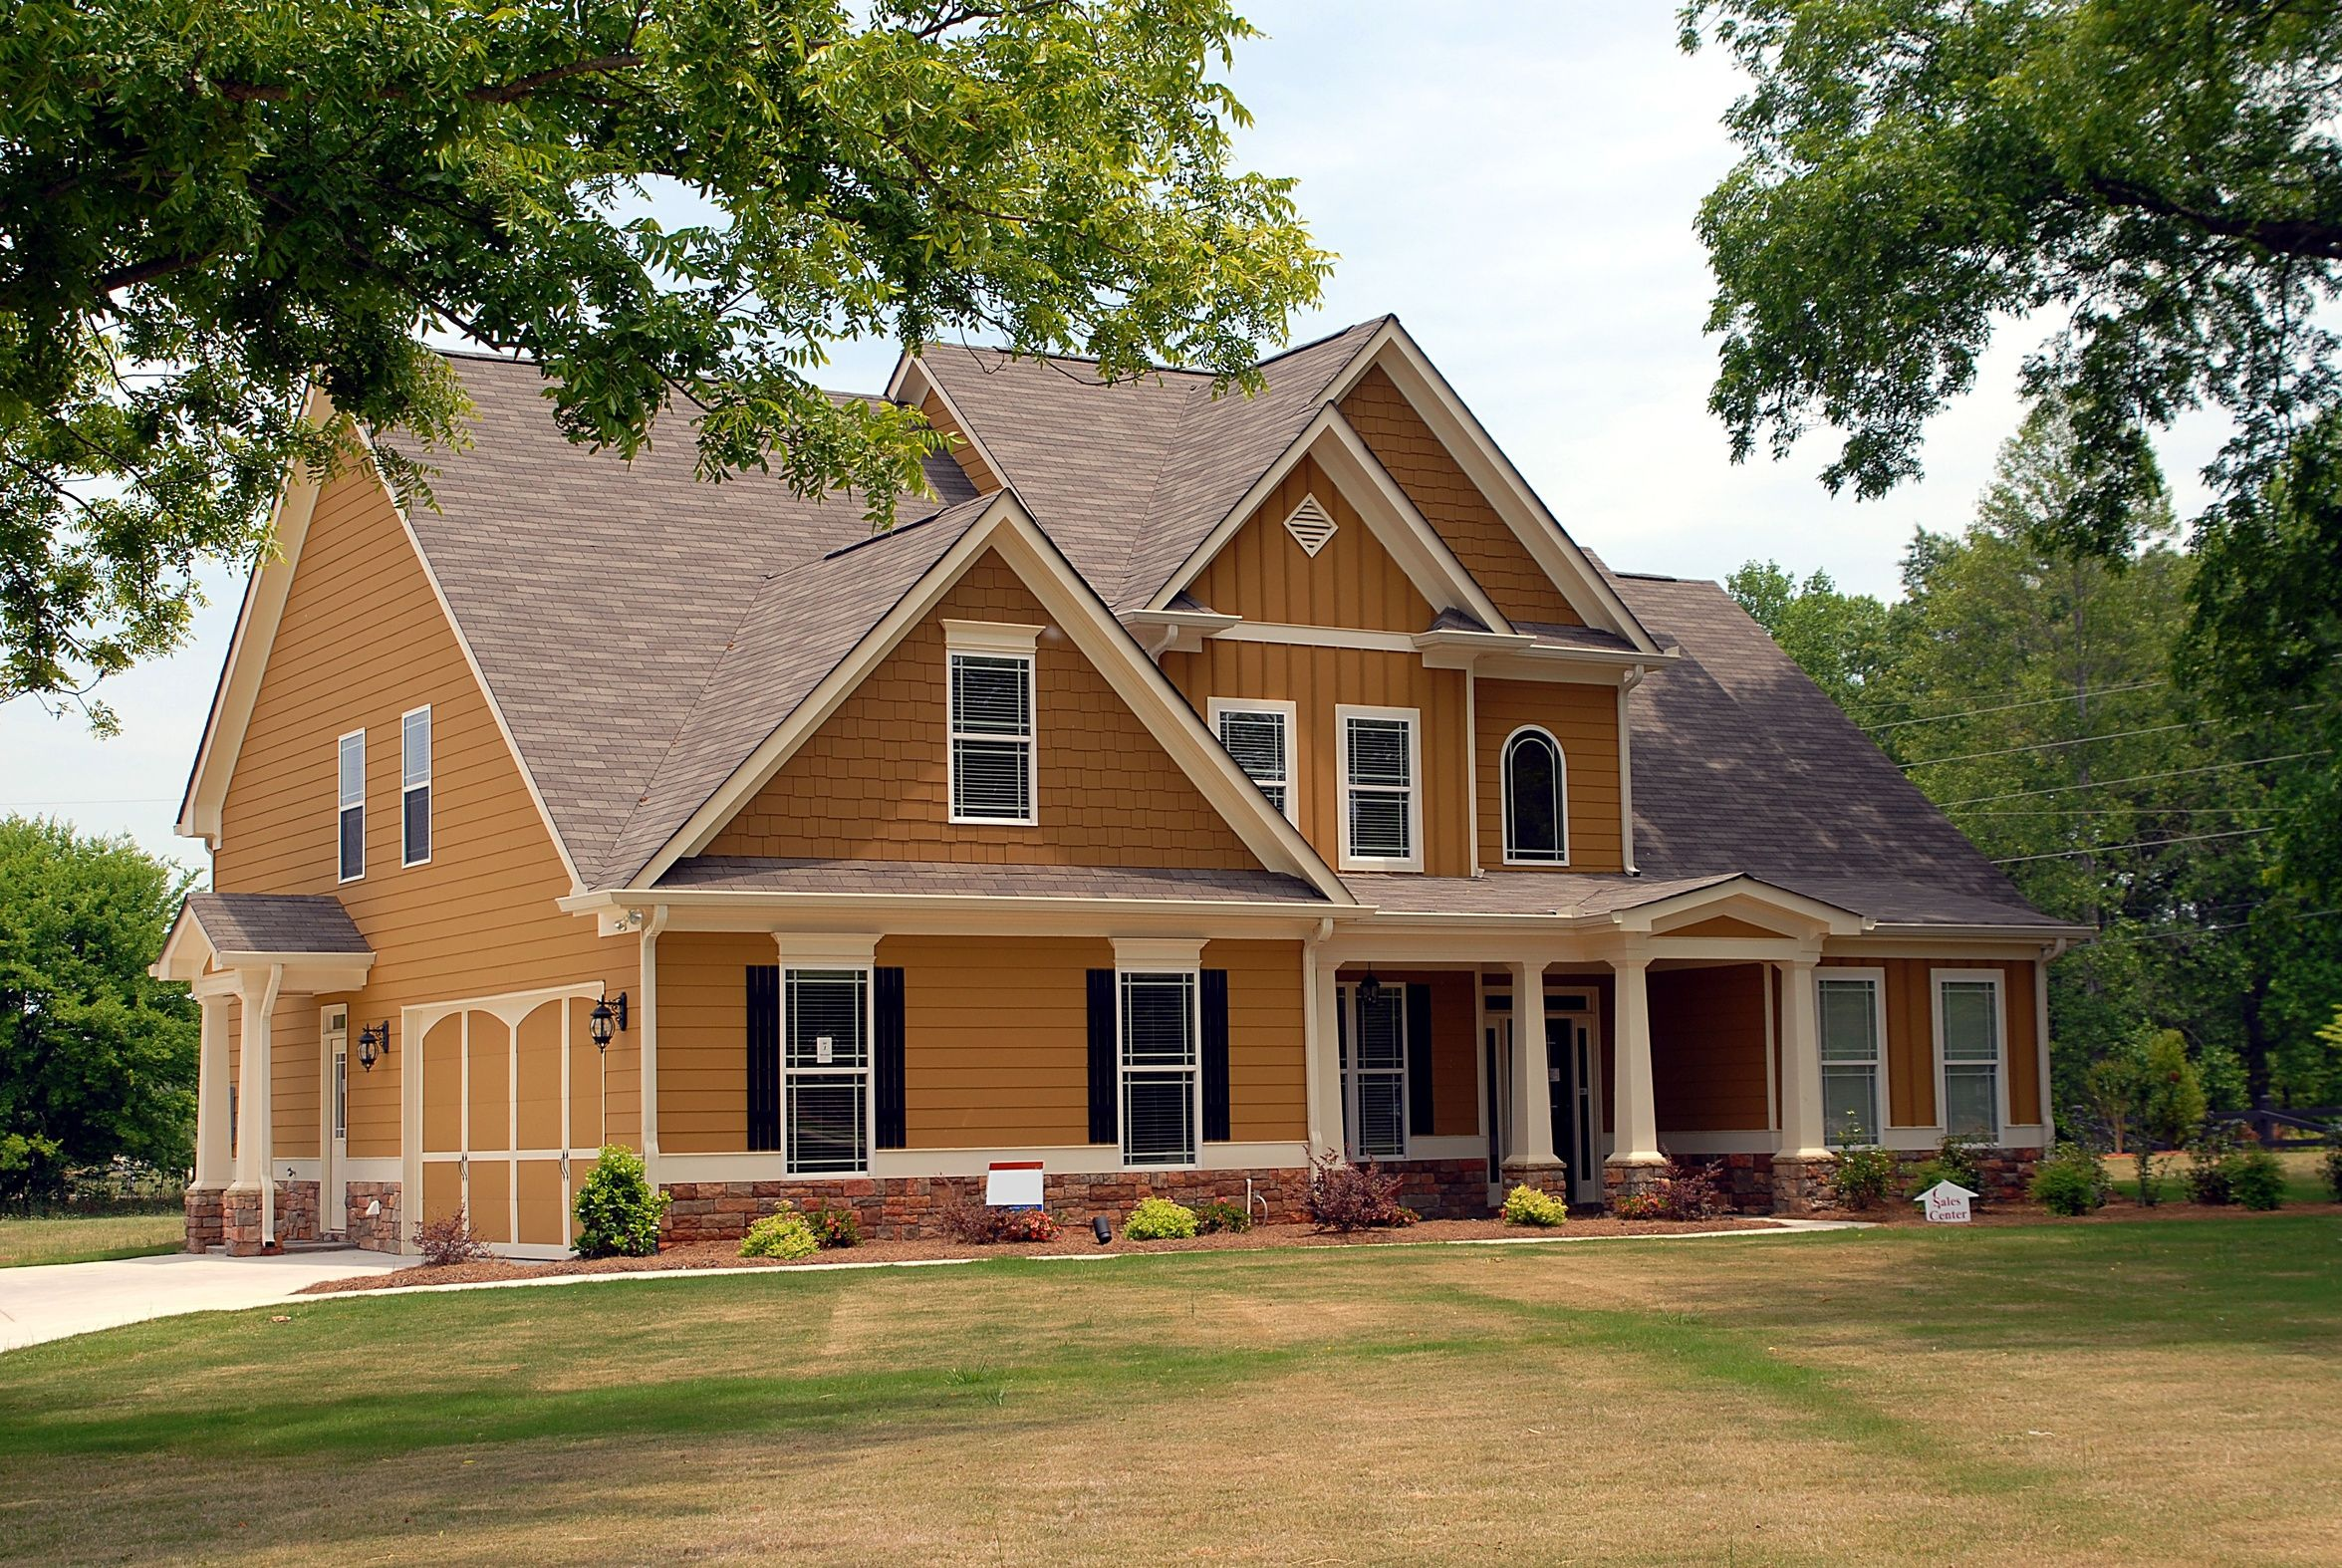 Brown exterior house paint colors looking for professional for Exterior paint colors for house